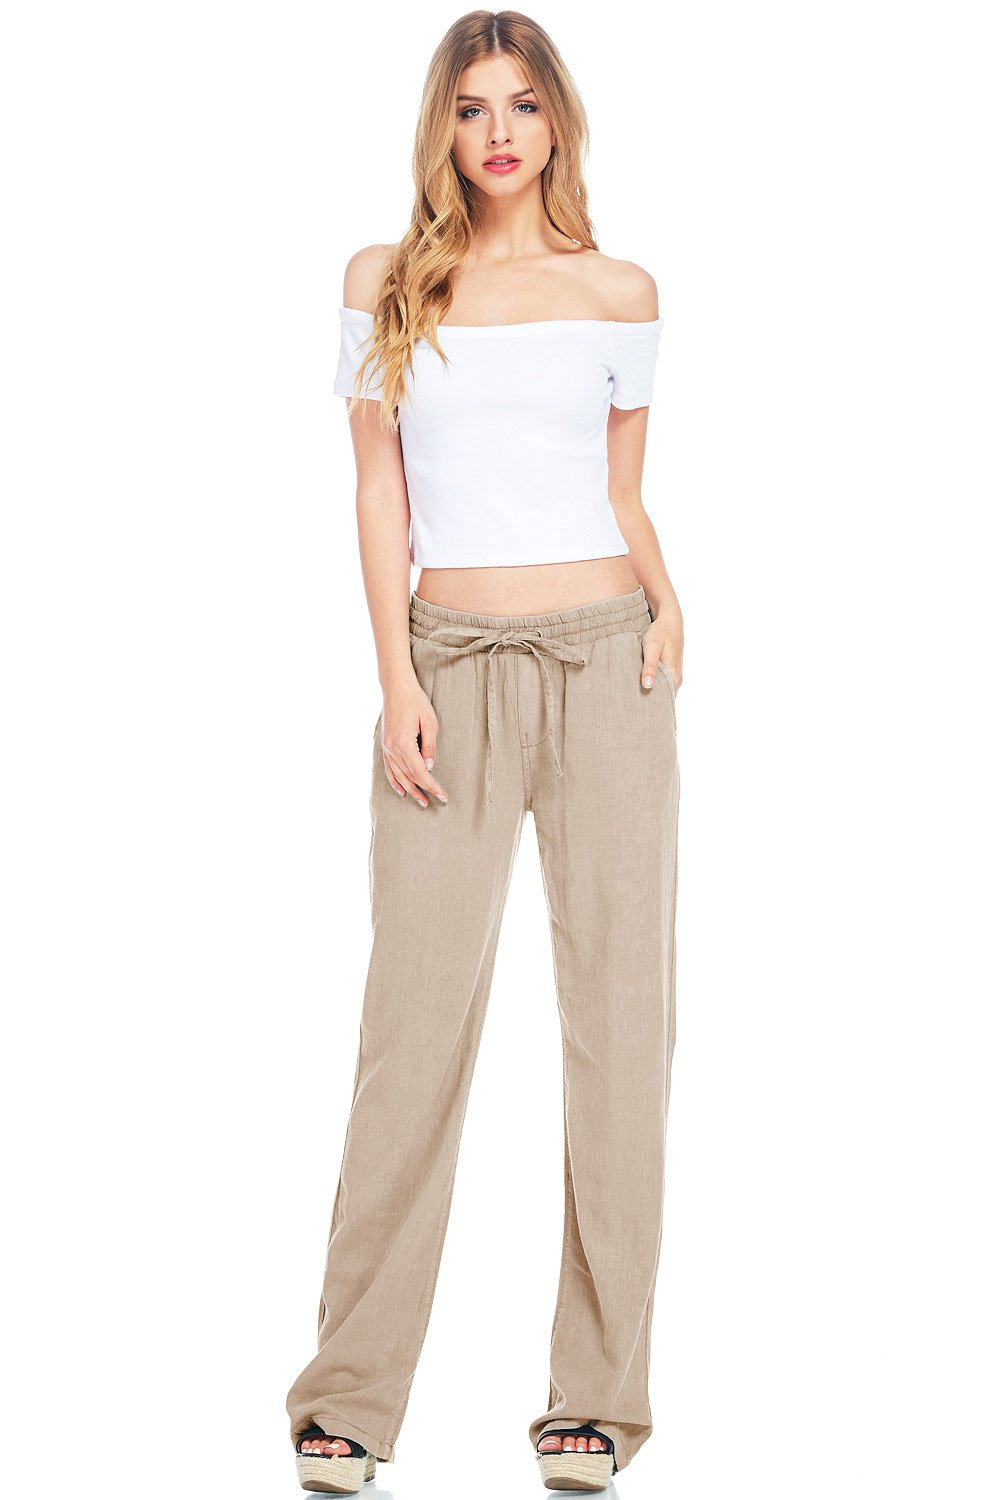 Celebrity Pink Women's Juniors Mid Waist Wide Leg Linen Pants (S, Coral)